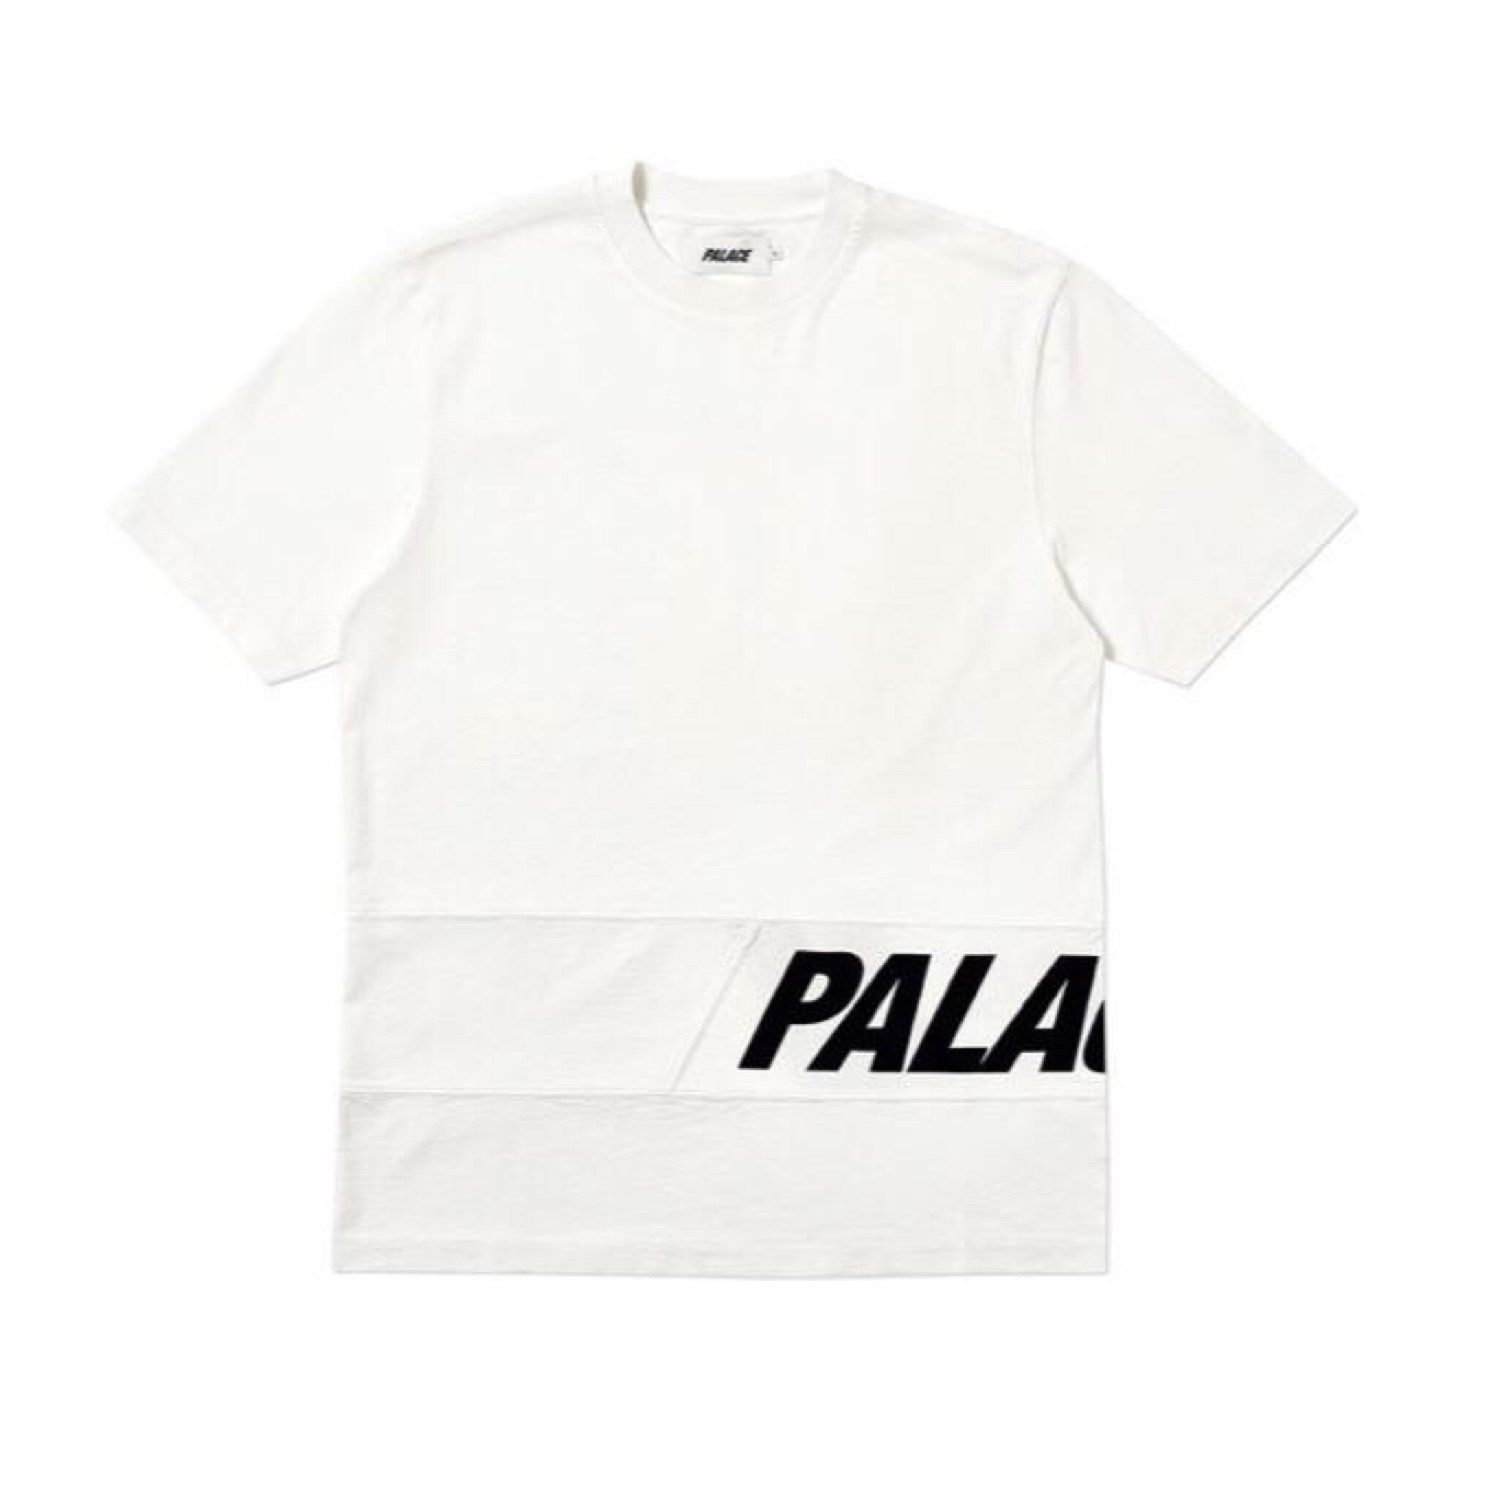 Palace Side T-Shirt - White